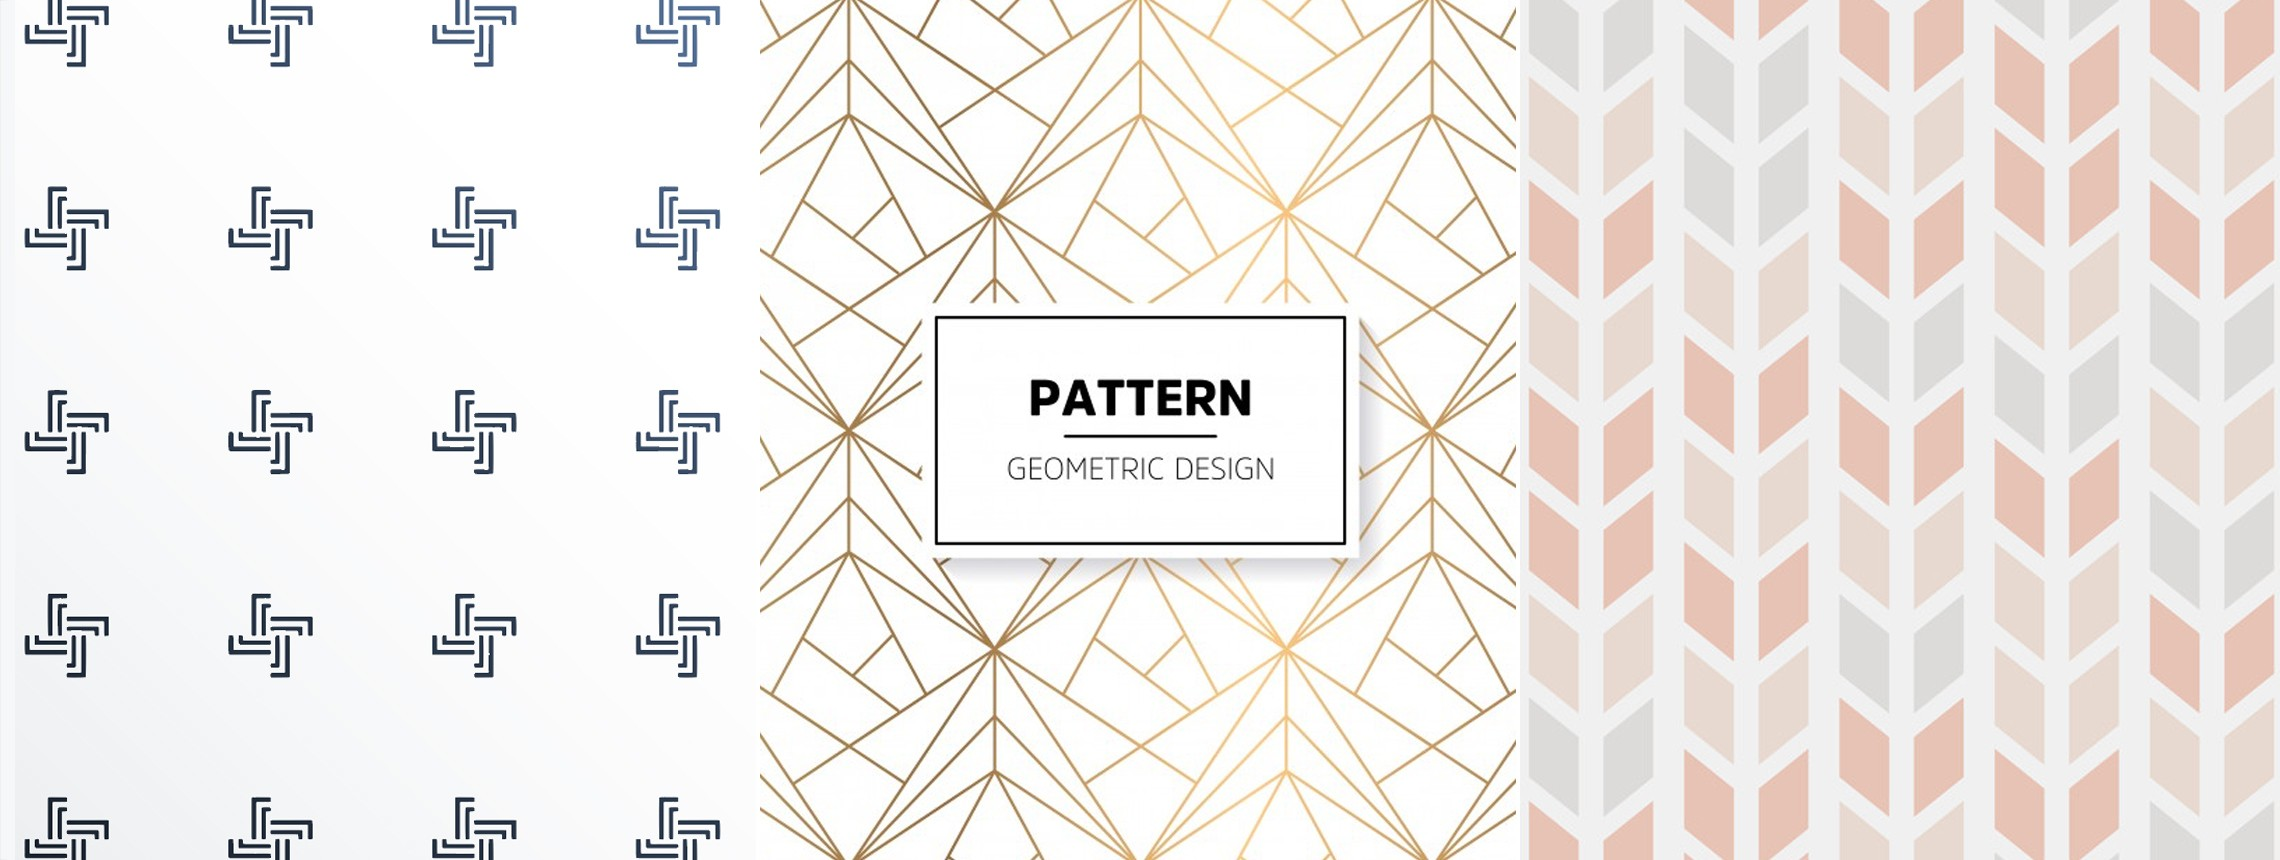 34 Subtle, Thoughtful Pattern Backgrounds